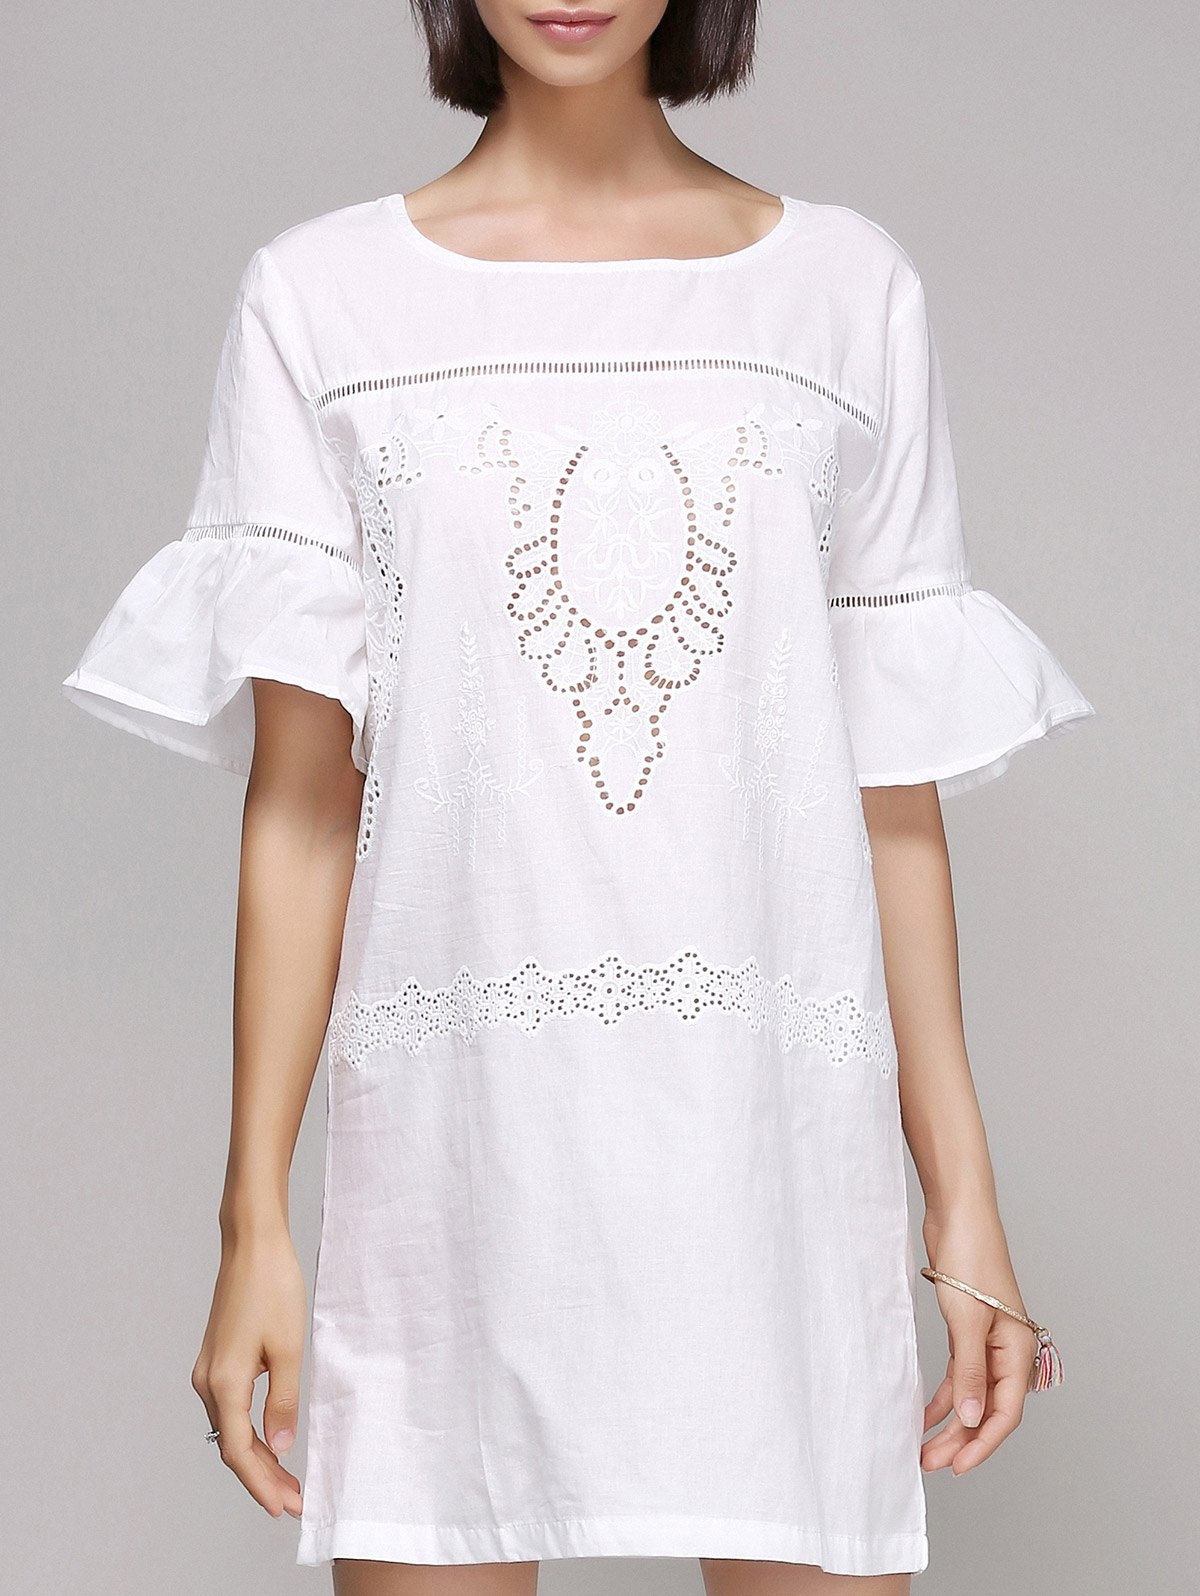 Stylish Flare Sleeve Embroidery Dress For Women - WHITE S